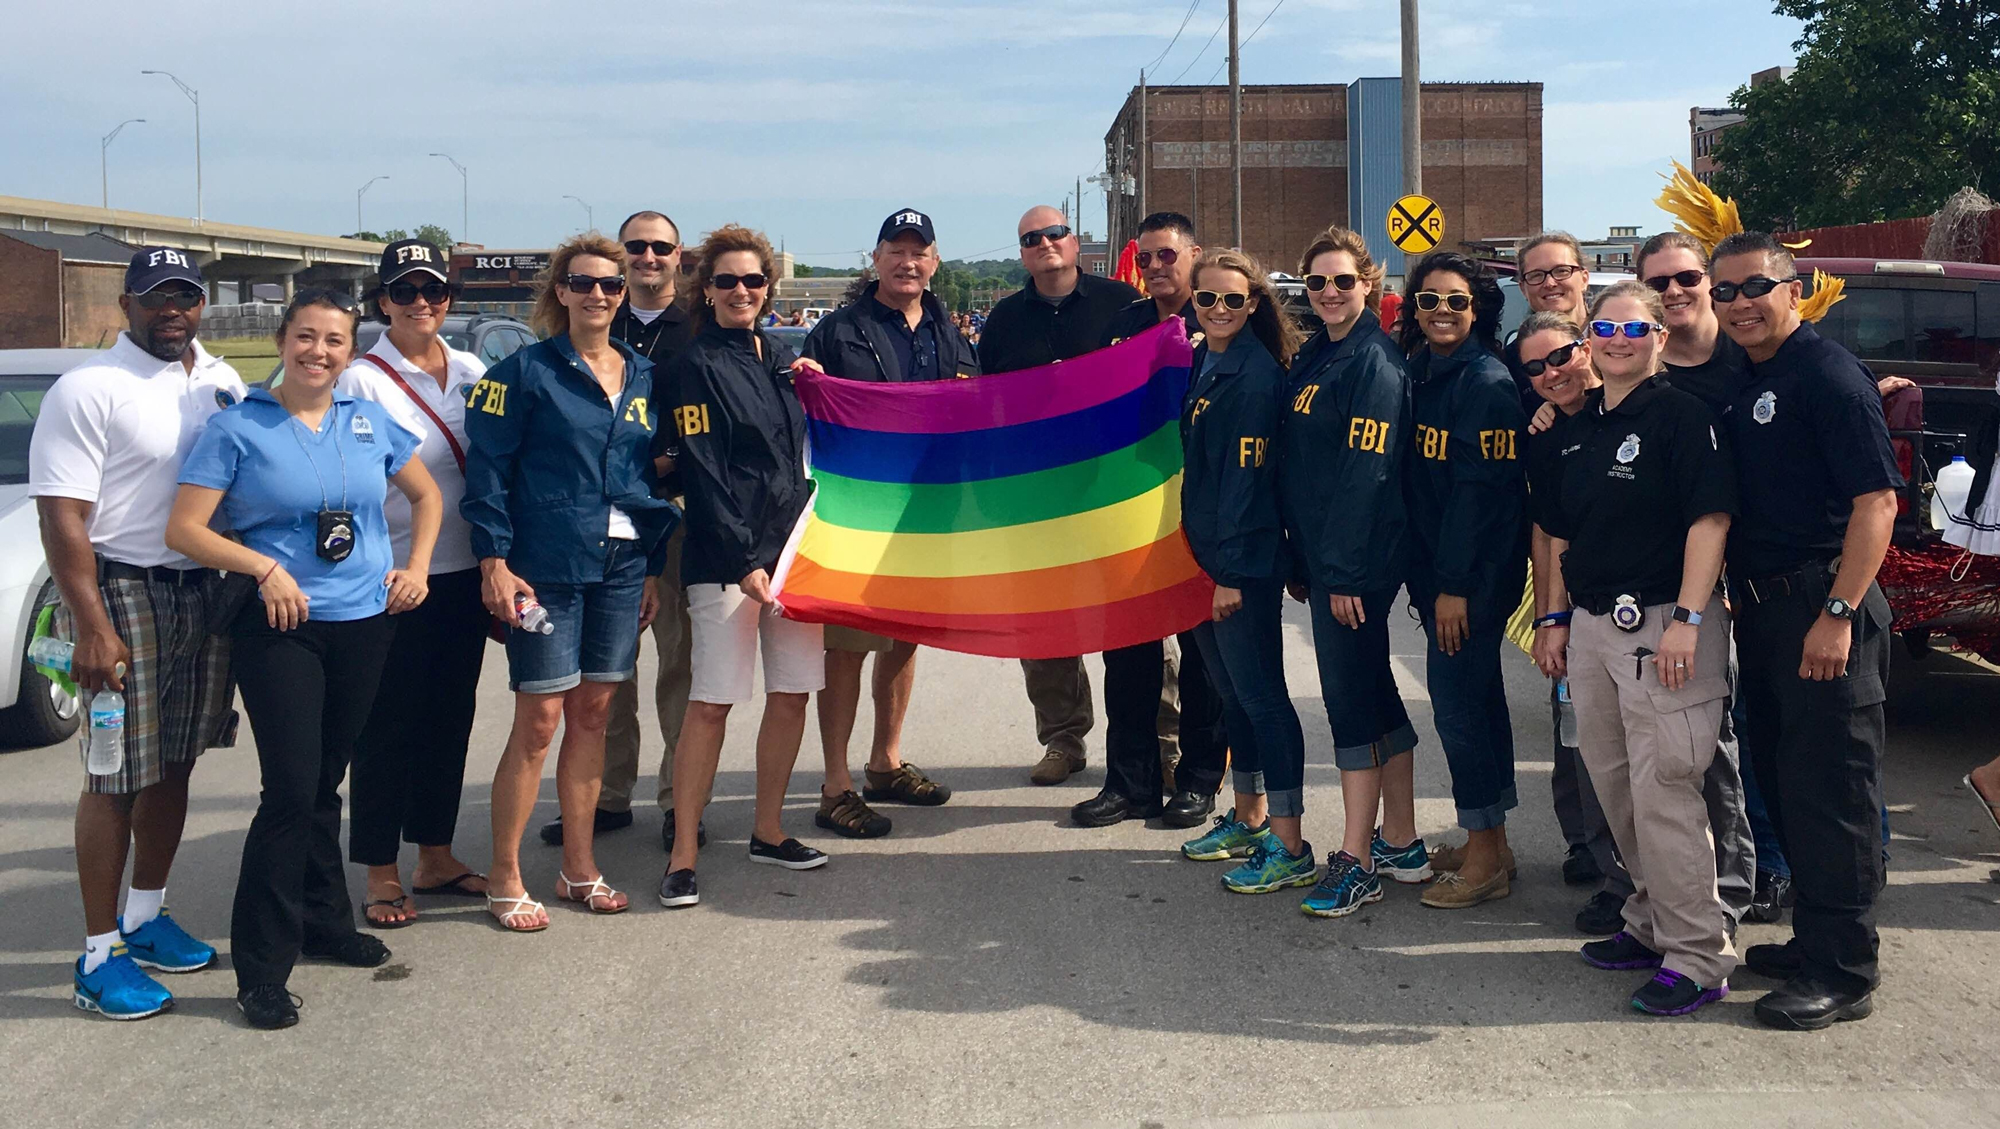 FBI Omaha Pride Group